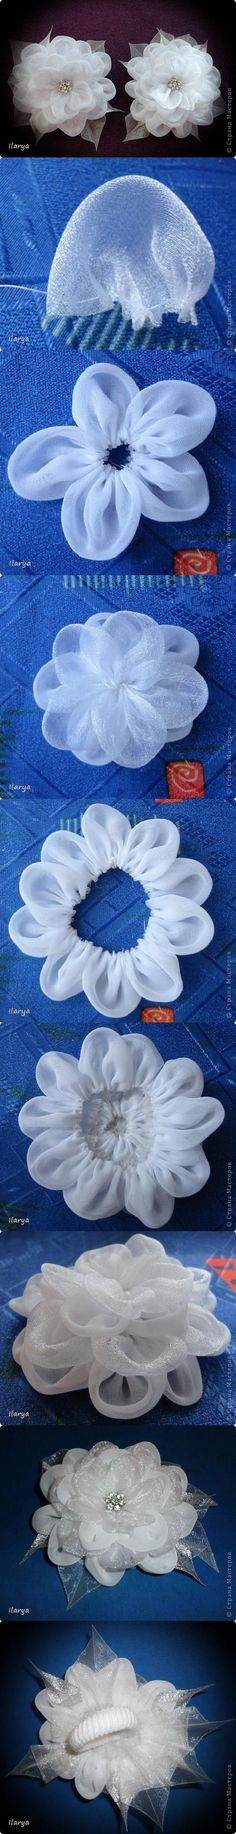 DIY Fabric Lust Flower DIY Projects This would be so cute for a hair pin! Ribbon Art, Fabric Ribbon, Ribbon Crafts, Flower Crafts, Fabric Crafts, Diy Crafts, Cloth Flowers, Felt Flowers, Diy Flowers